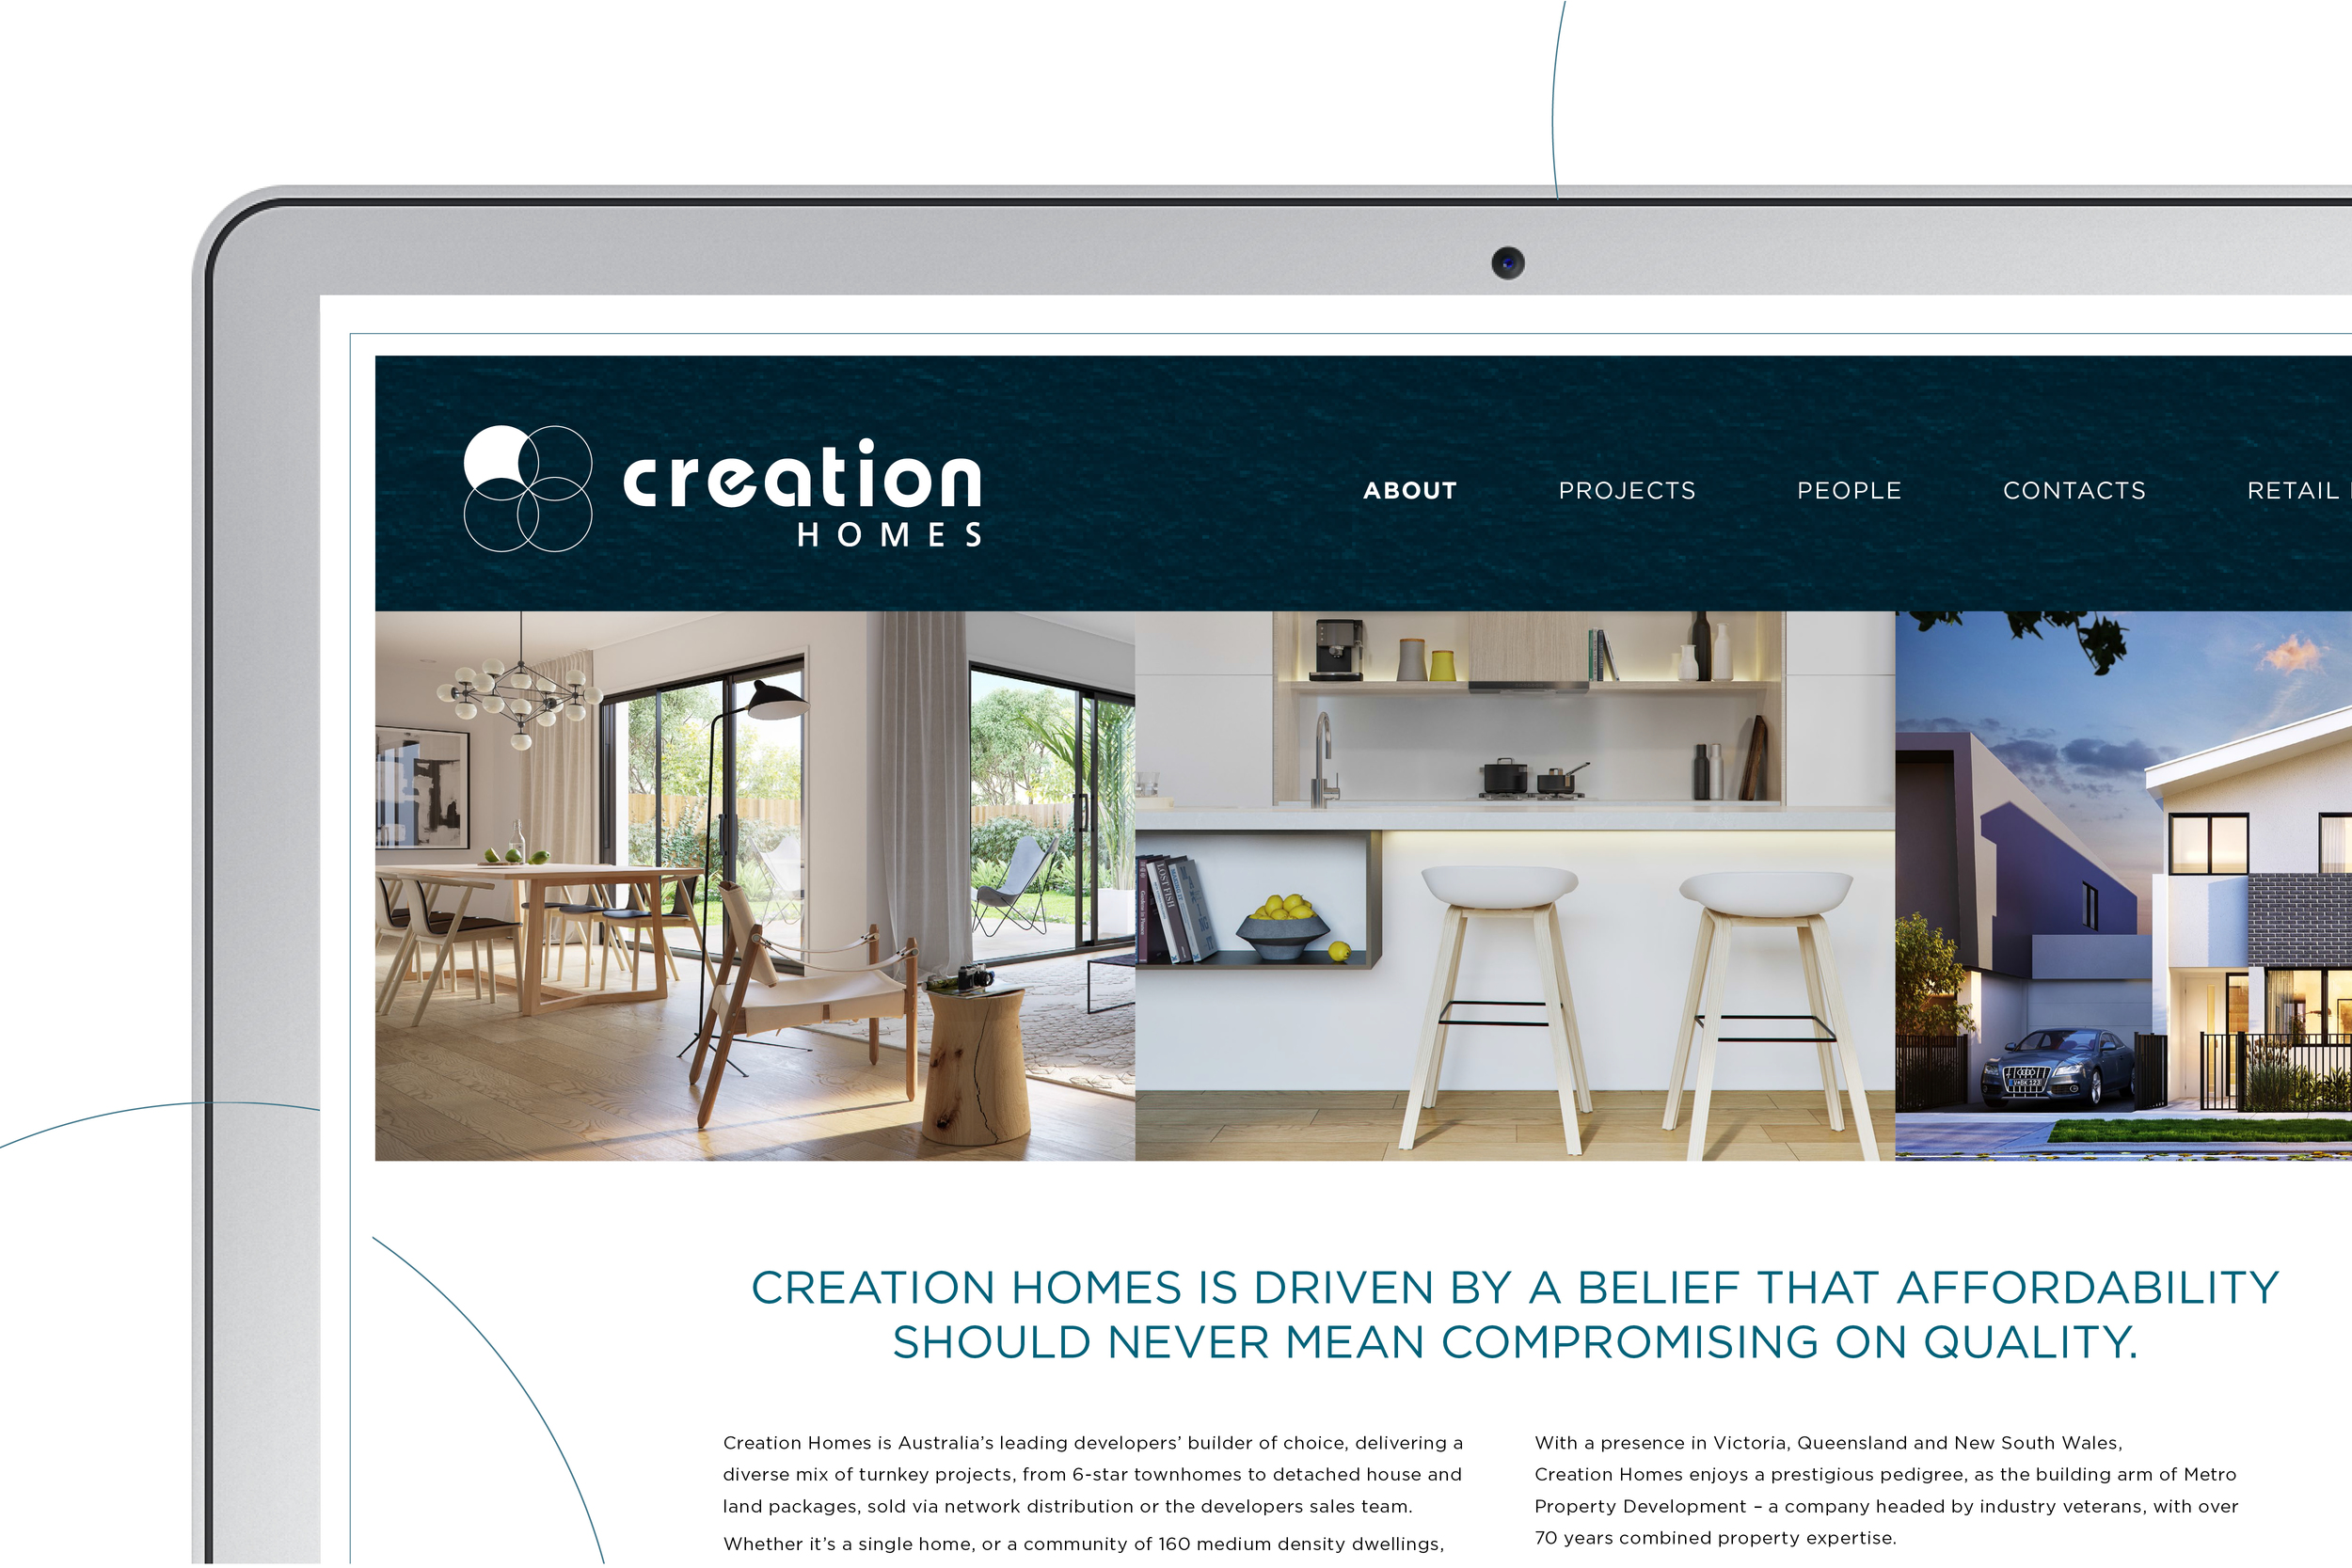 P+_folio_CreationHomes_4.jpg